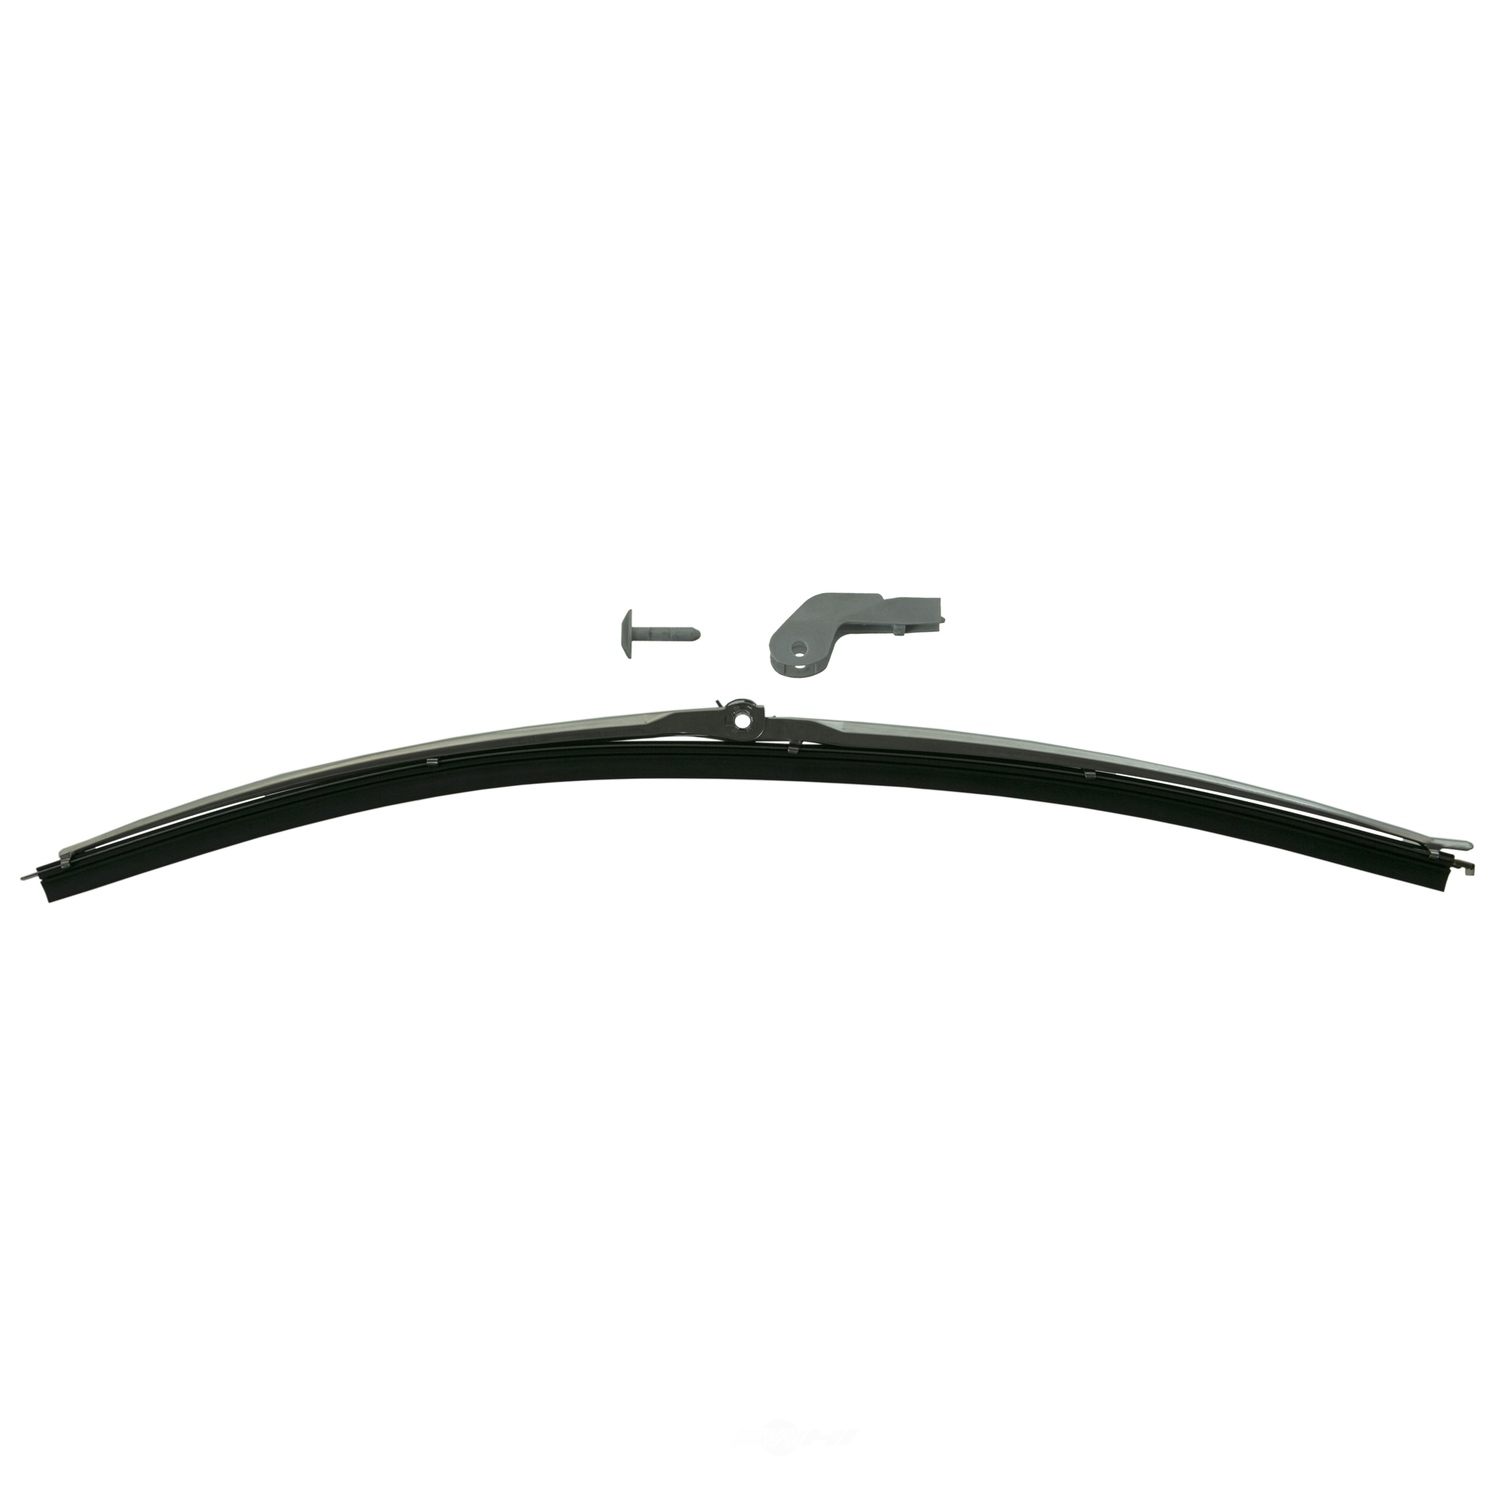 ANCO WIPER PRODUCTS - Vintage Wiper Blade - ANC 20-18